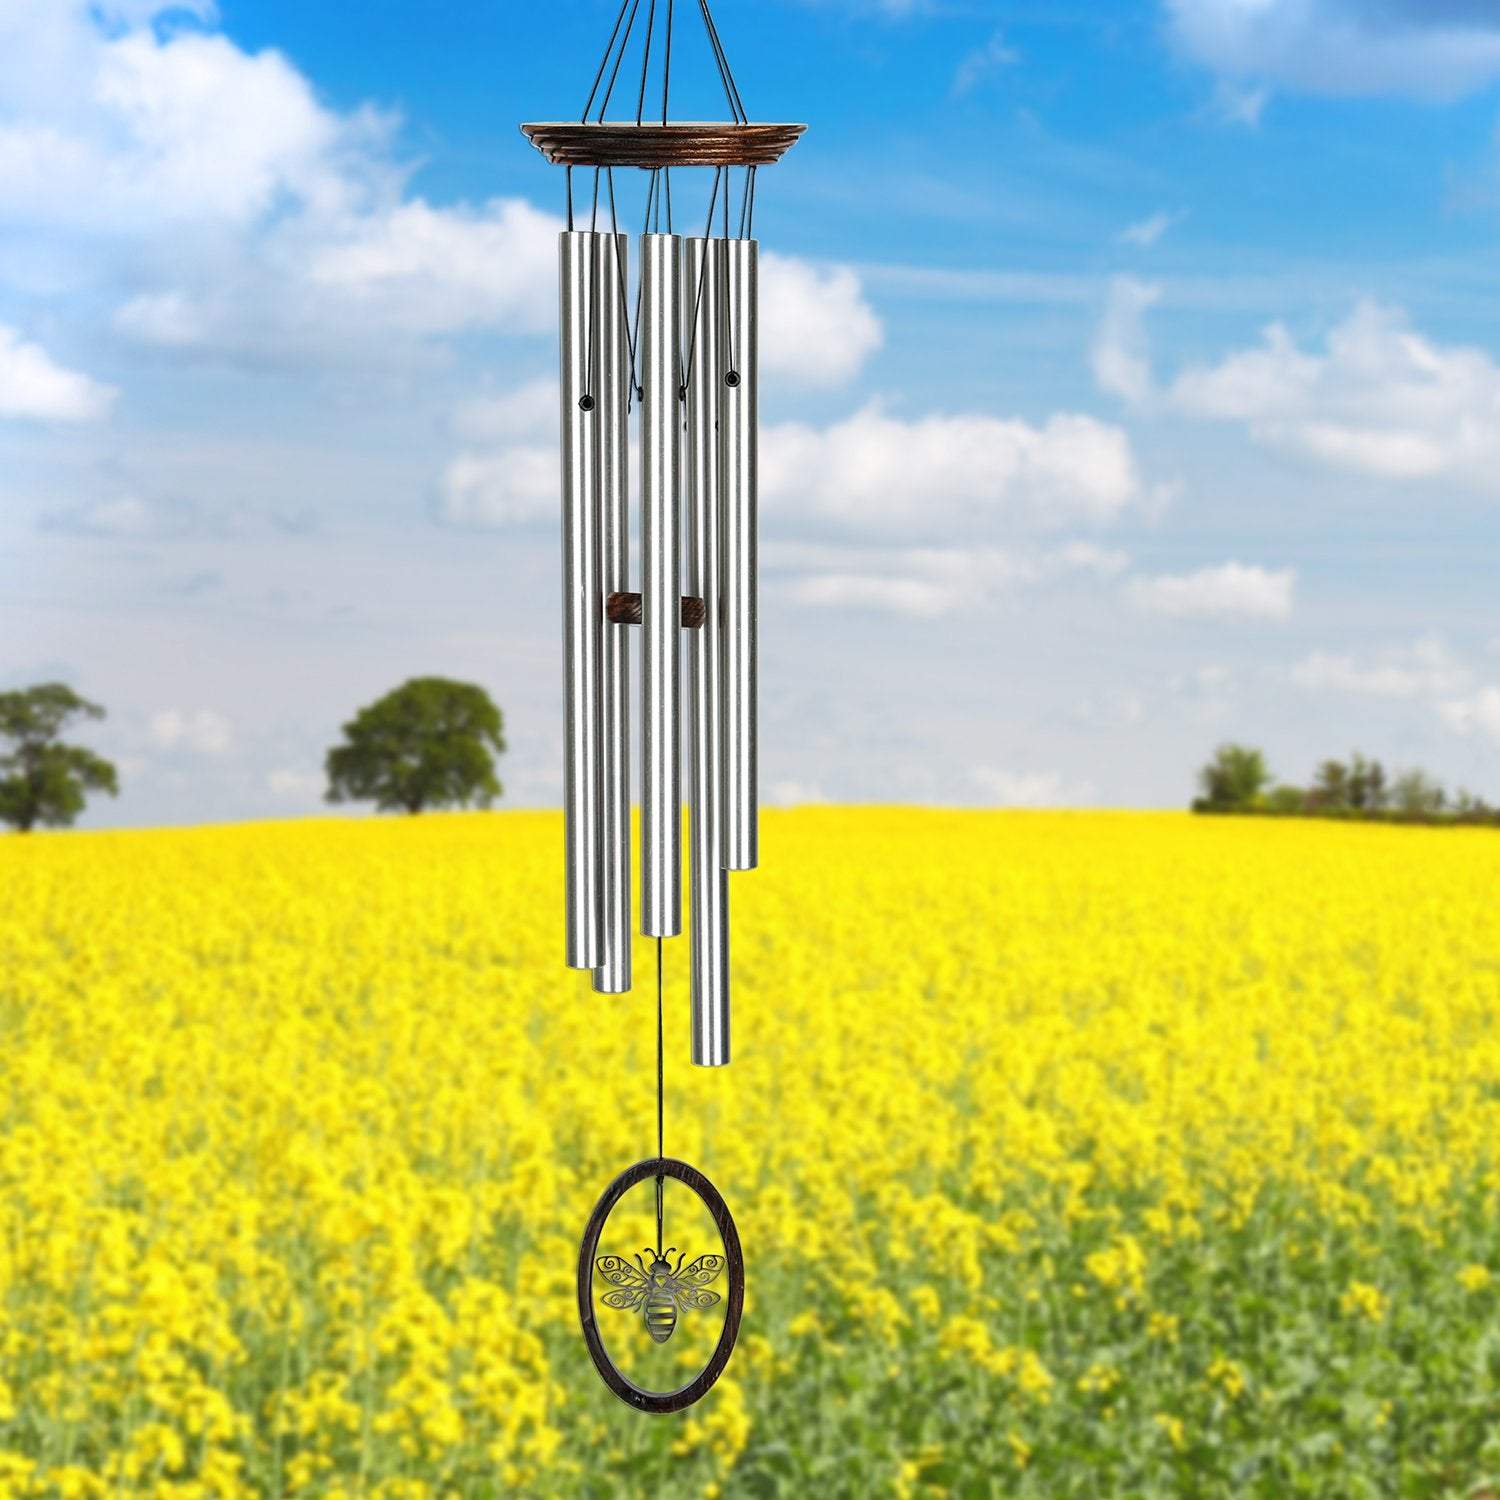 Wind Fantasy Chime - Bumble Bee lifestyle image